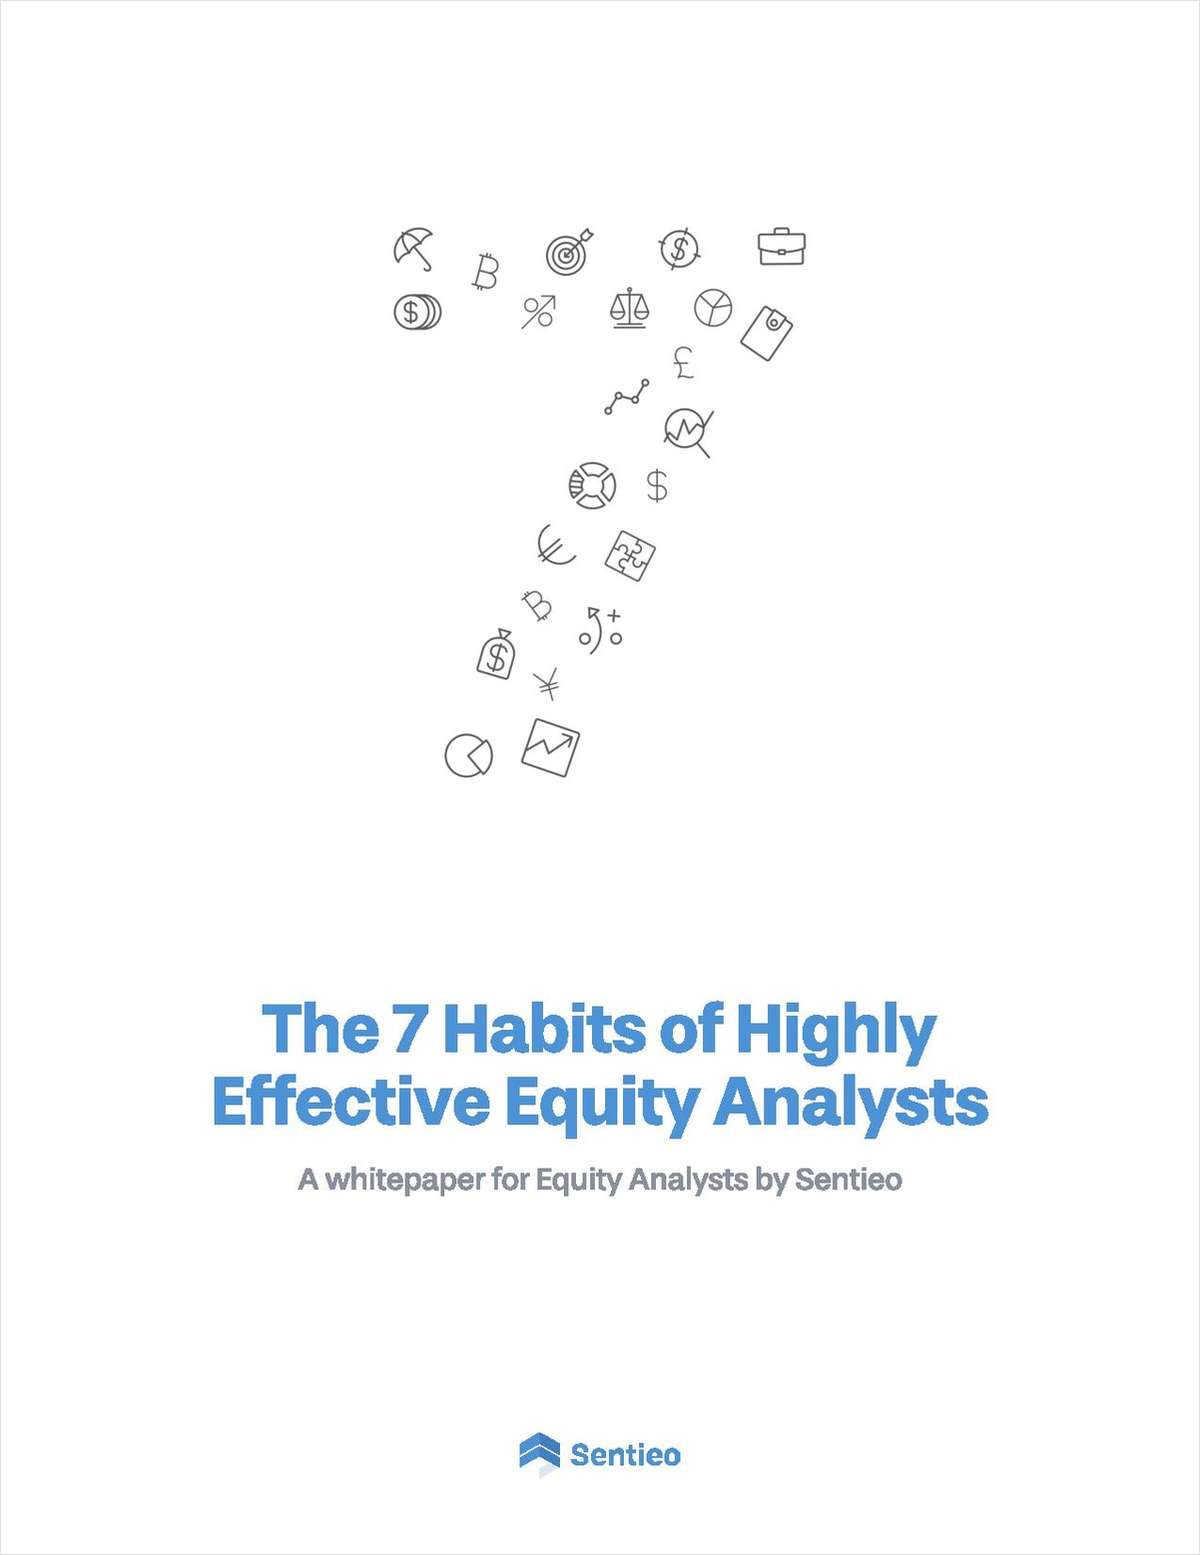 The 7 Habits of Highly Effective Equity Analysts